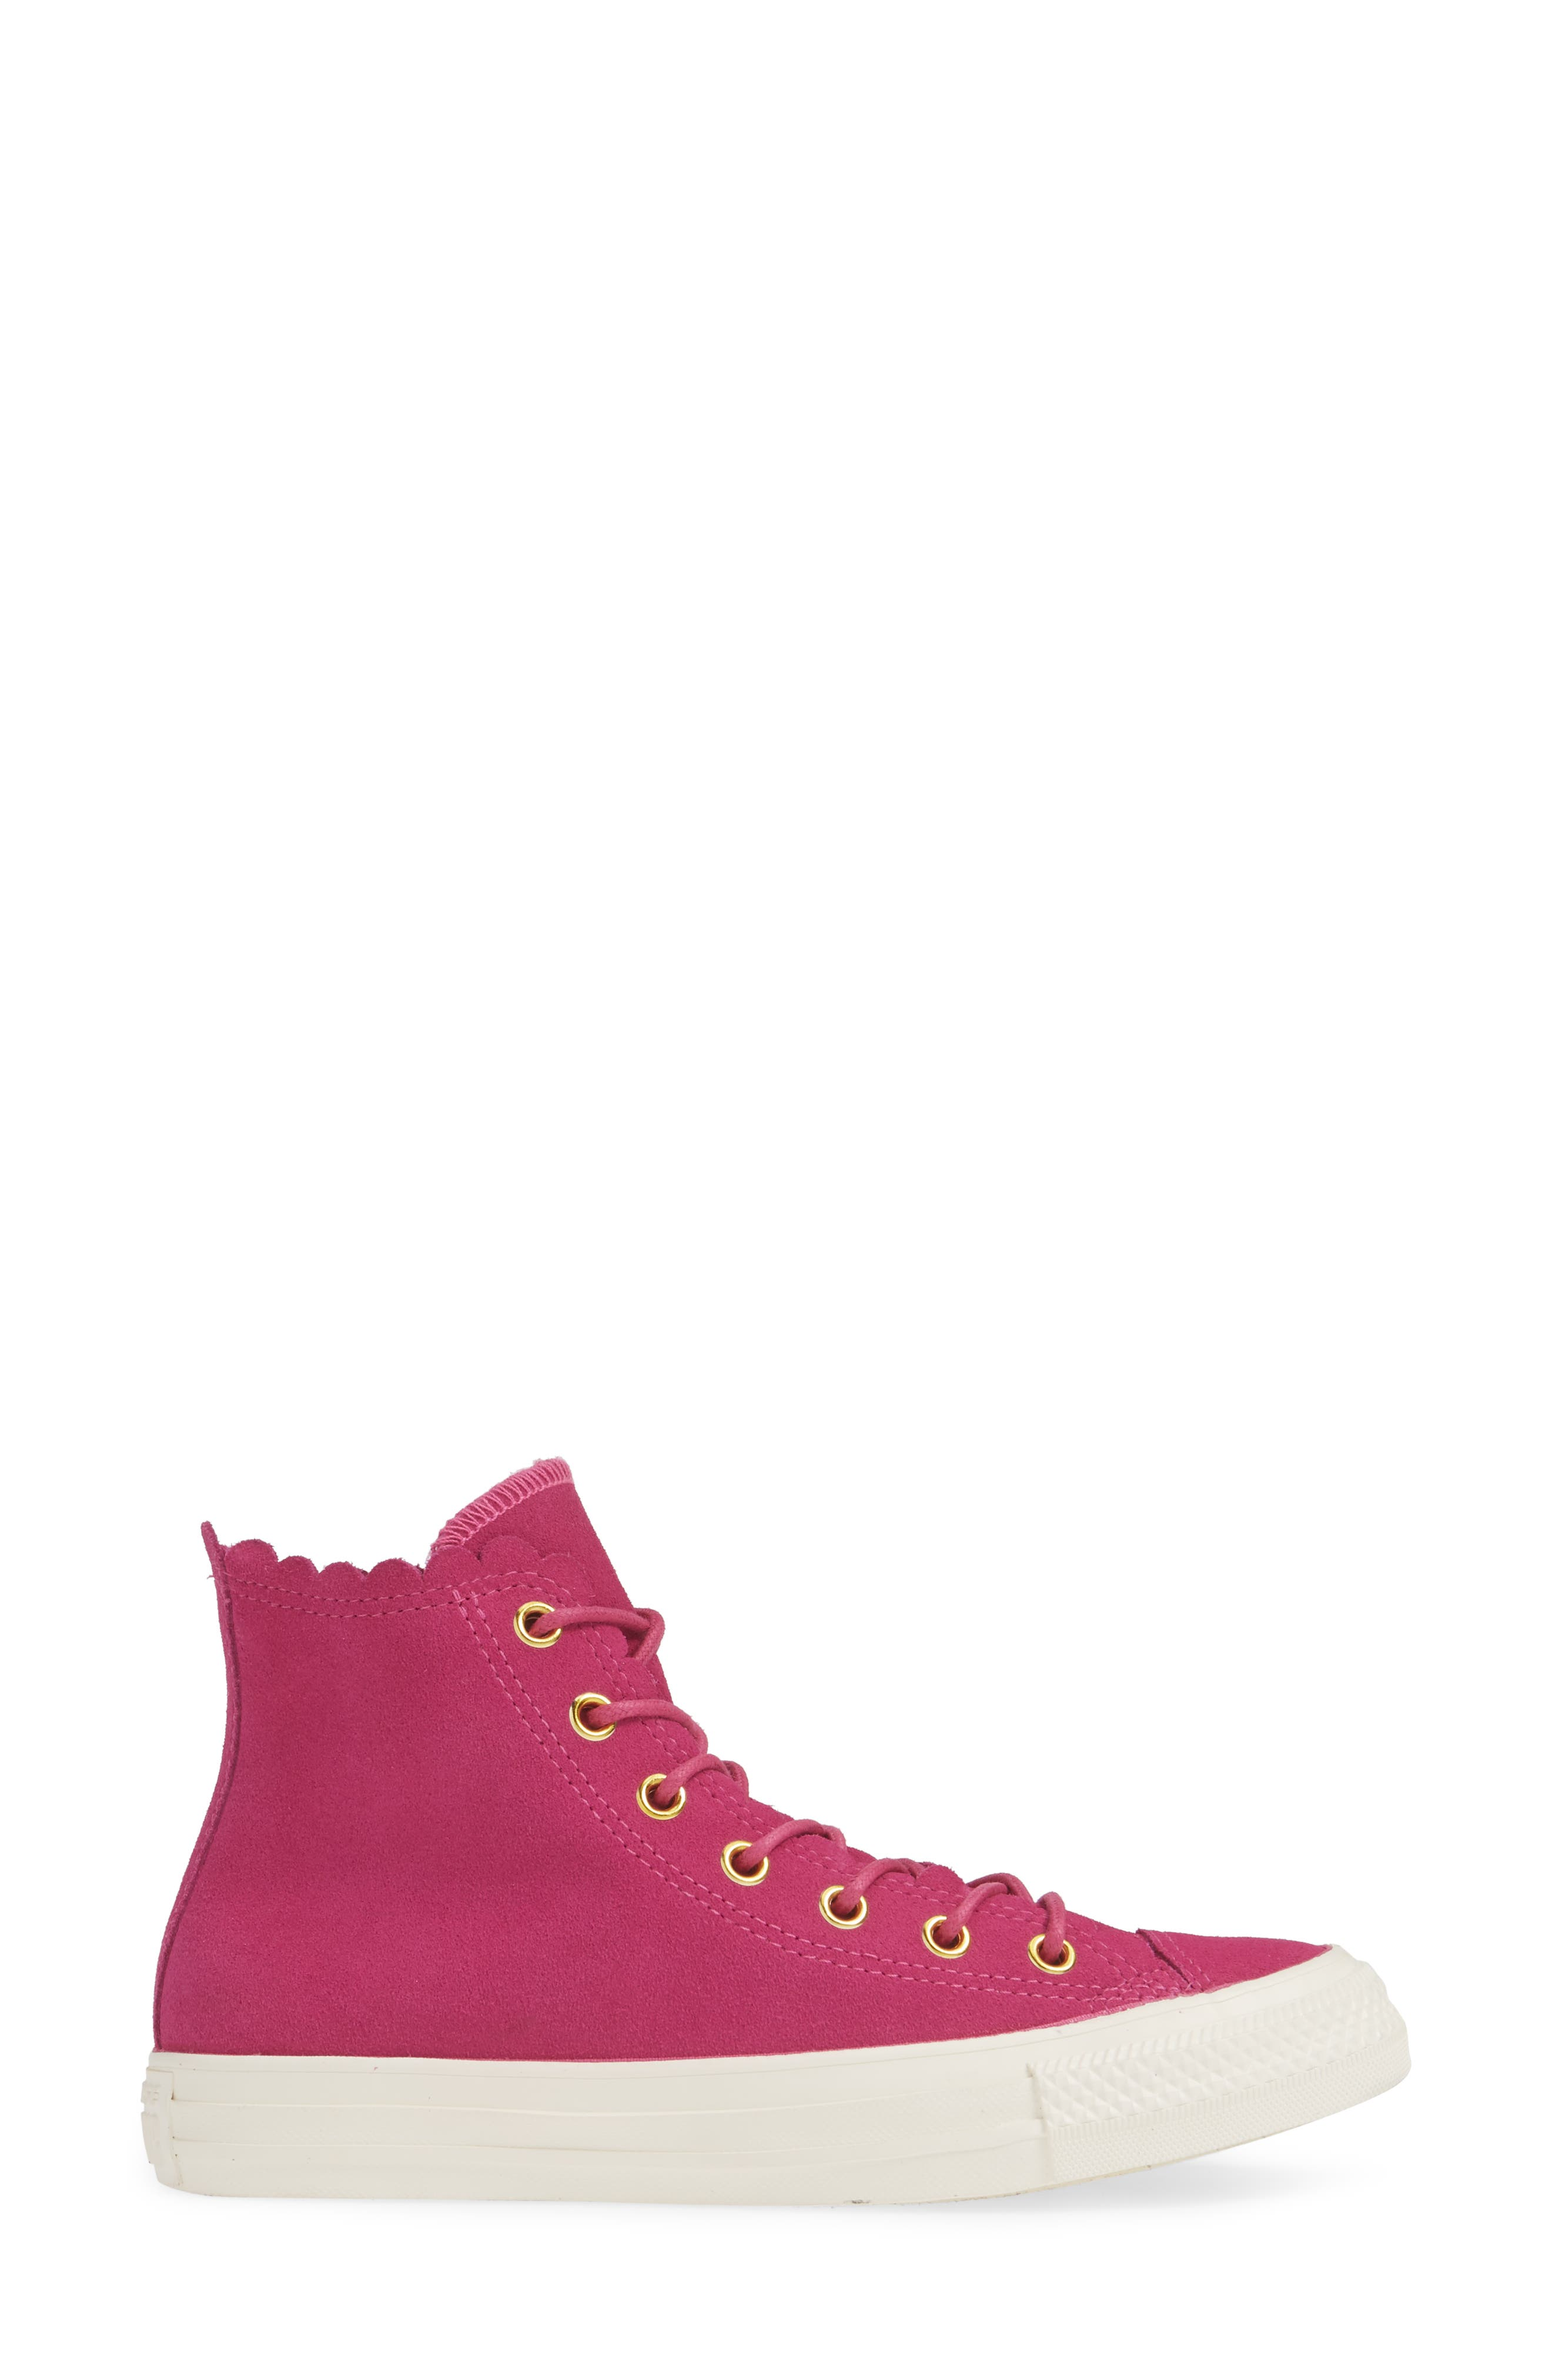 CONVERSE, Chuck Taylor<sup>®</sup> All Star<sup>®</sup> Scallop High Top Suede Sneaker, Alternate thumbnail 3, color, ACTIVE FUCHSIA/ GOLD/ EGRET